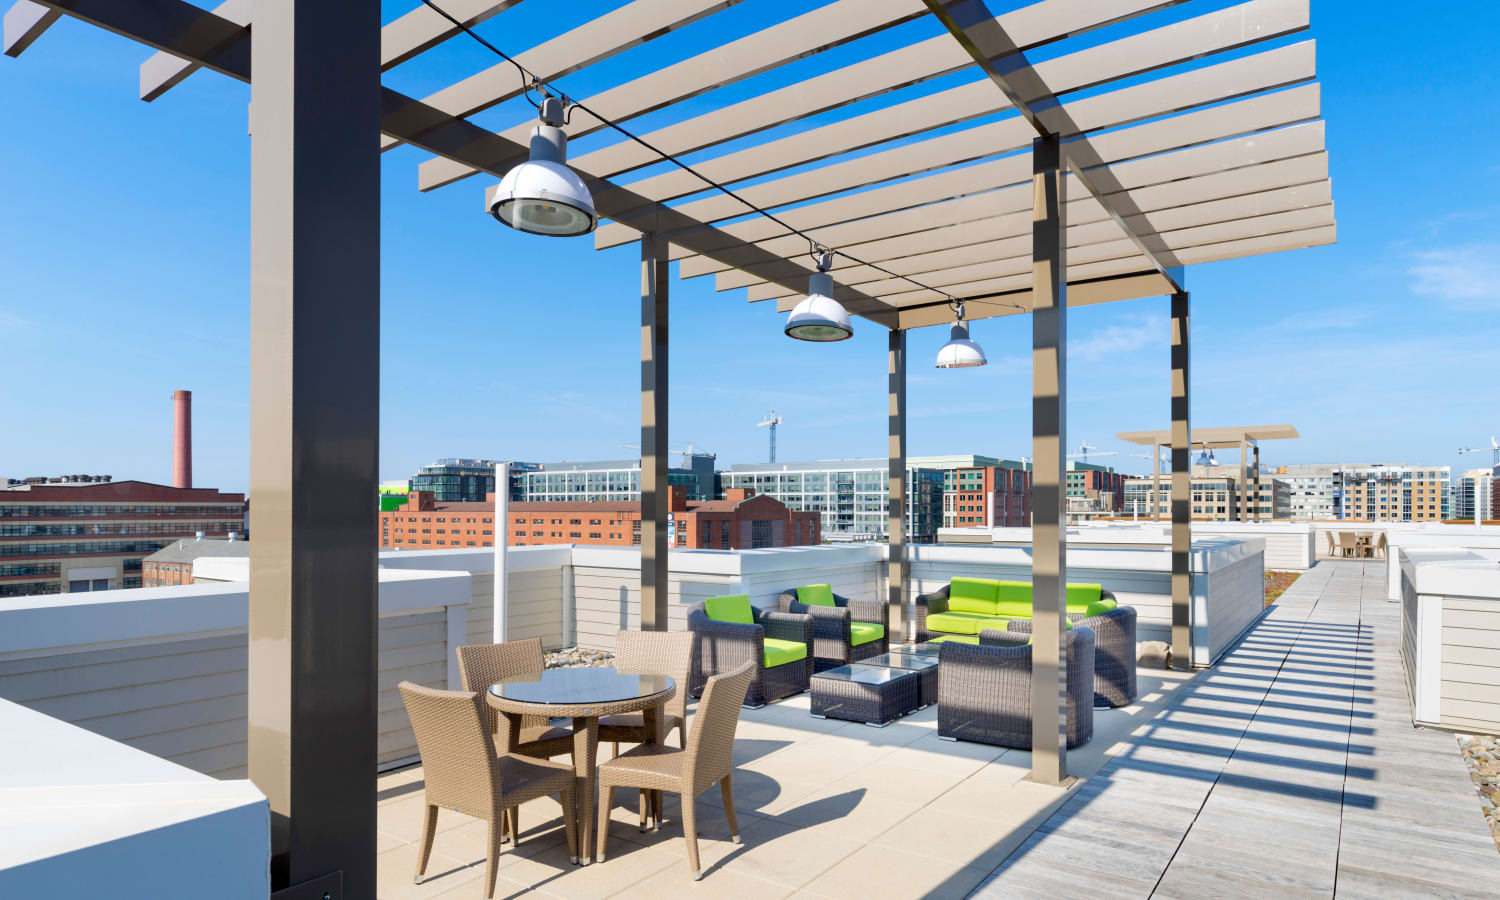 Rooftop lounge area at The Bixby in Washington, District of Columbia